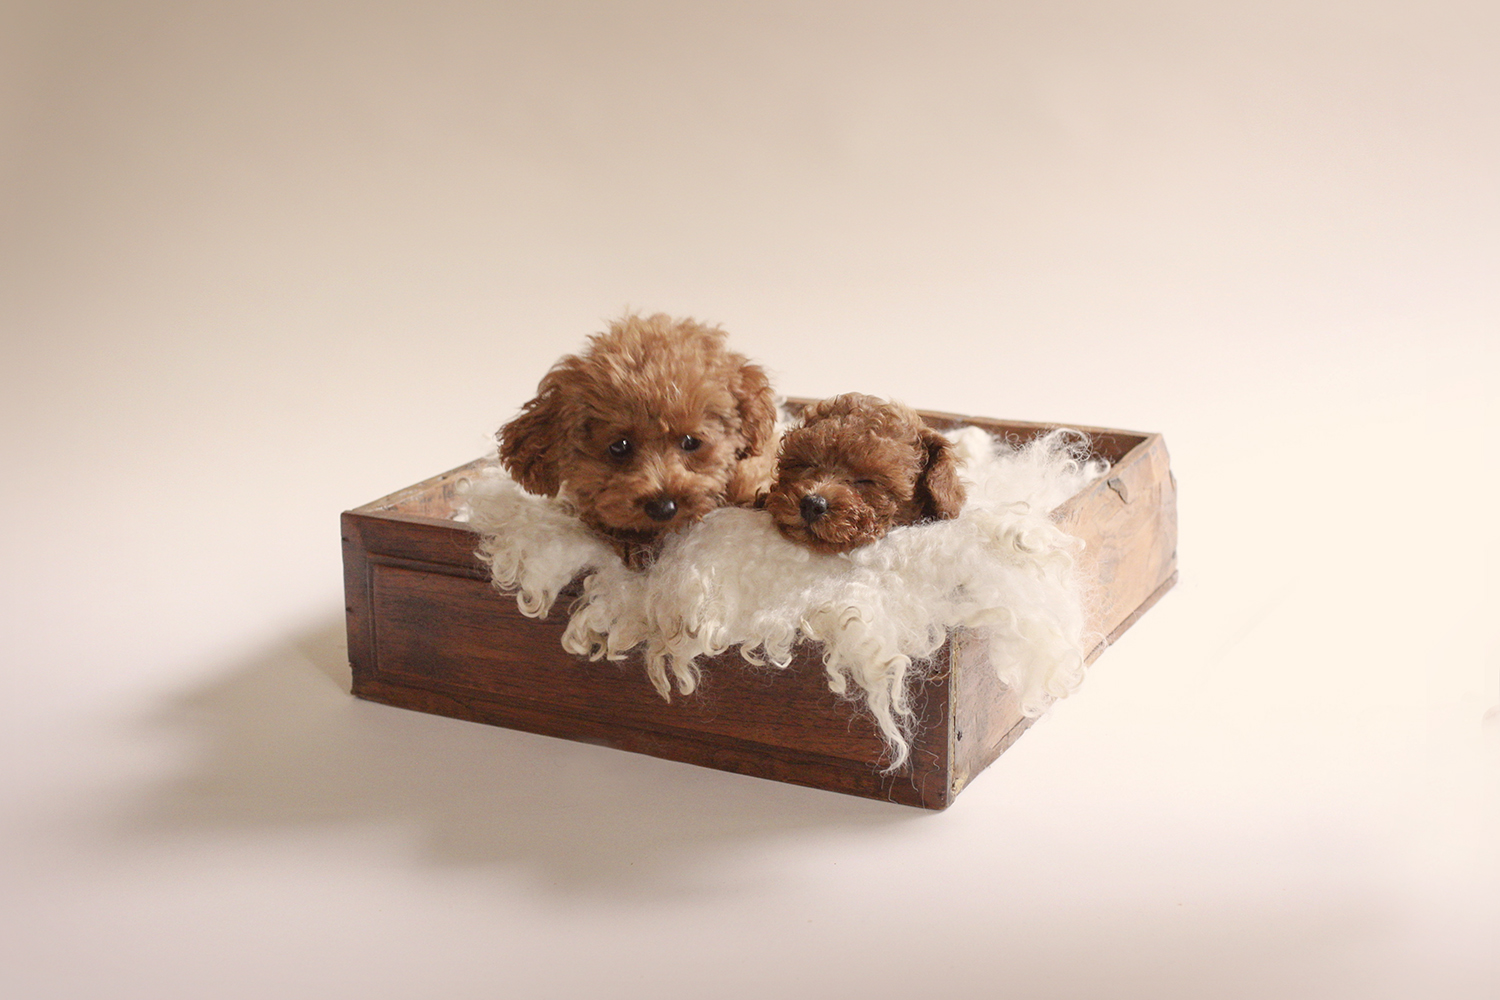 Newborn puppies sleeping in wooden drawer with cream curly fur on cream backdrop